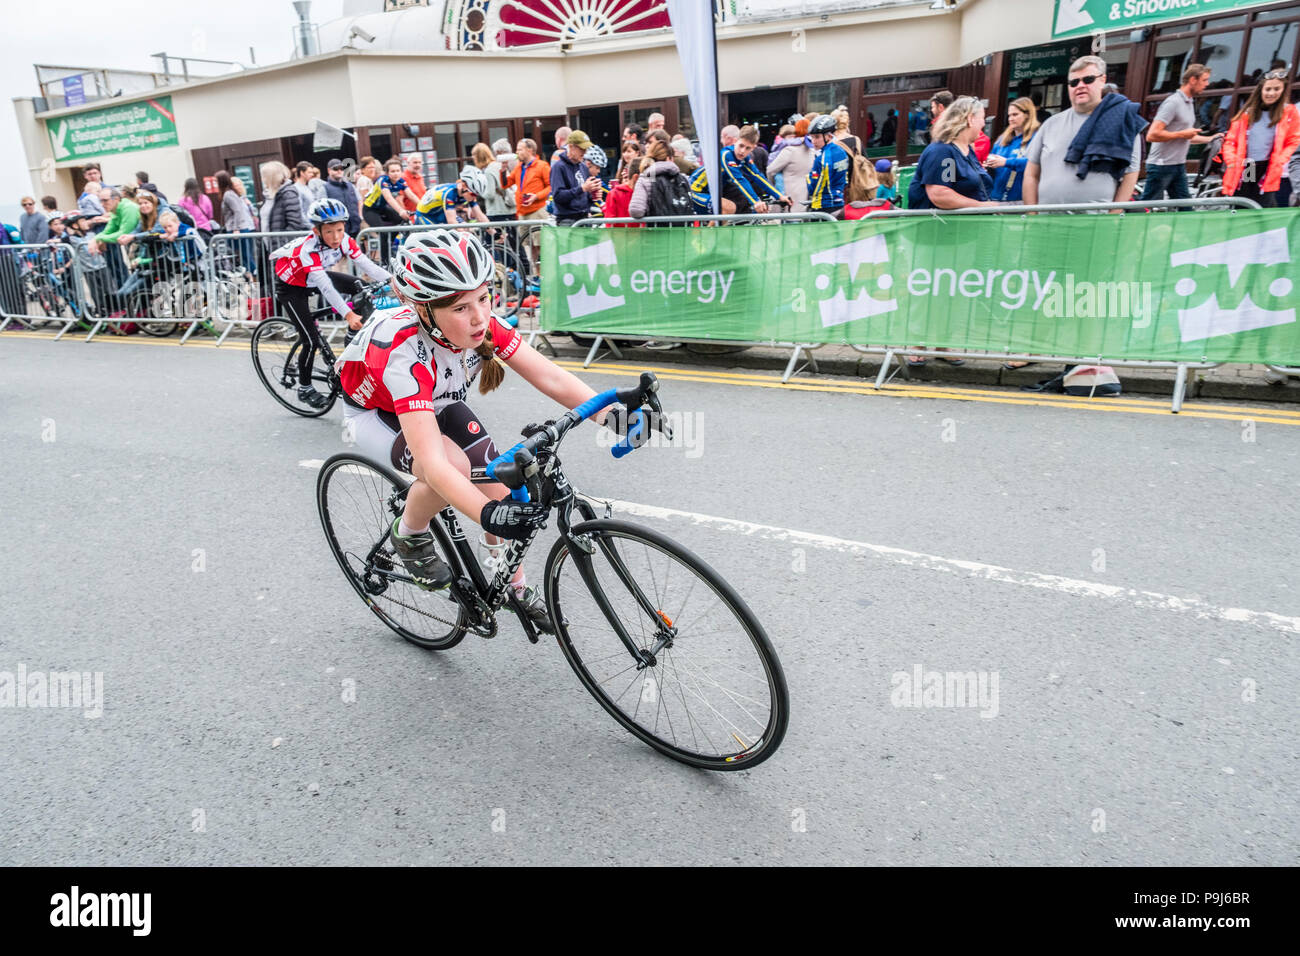 Cycling in the UK: Children and young people competing in a series of street races around Aberystwyth  Wales UK as part of  the annual Aber Cycle Fest event,  a festival of road and off road cycling held in the town every May. - Stock Image